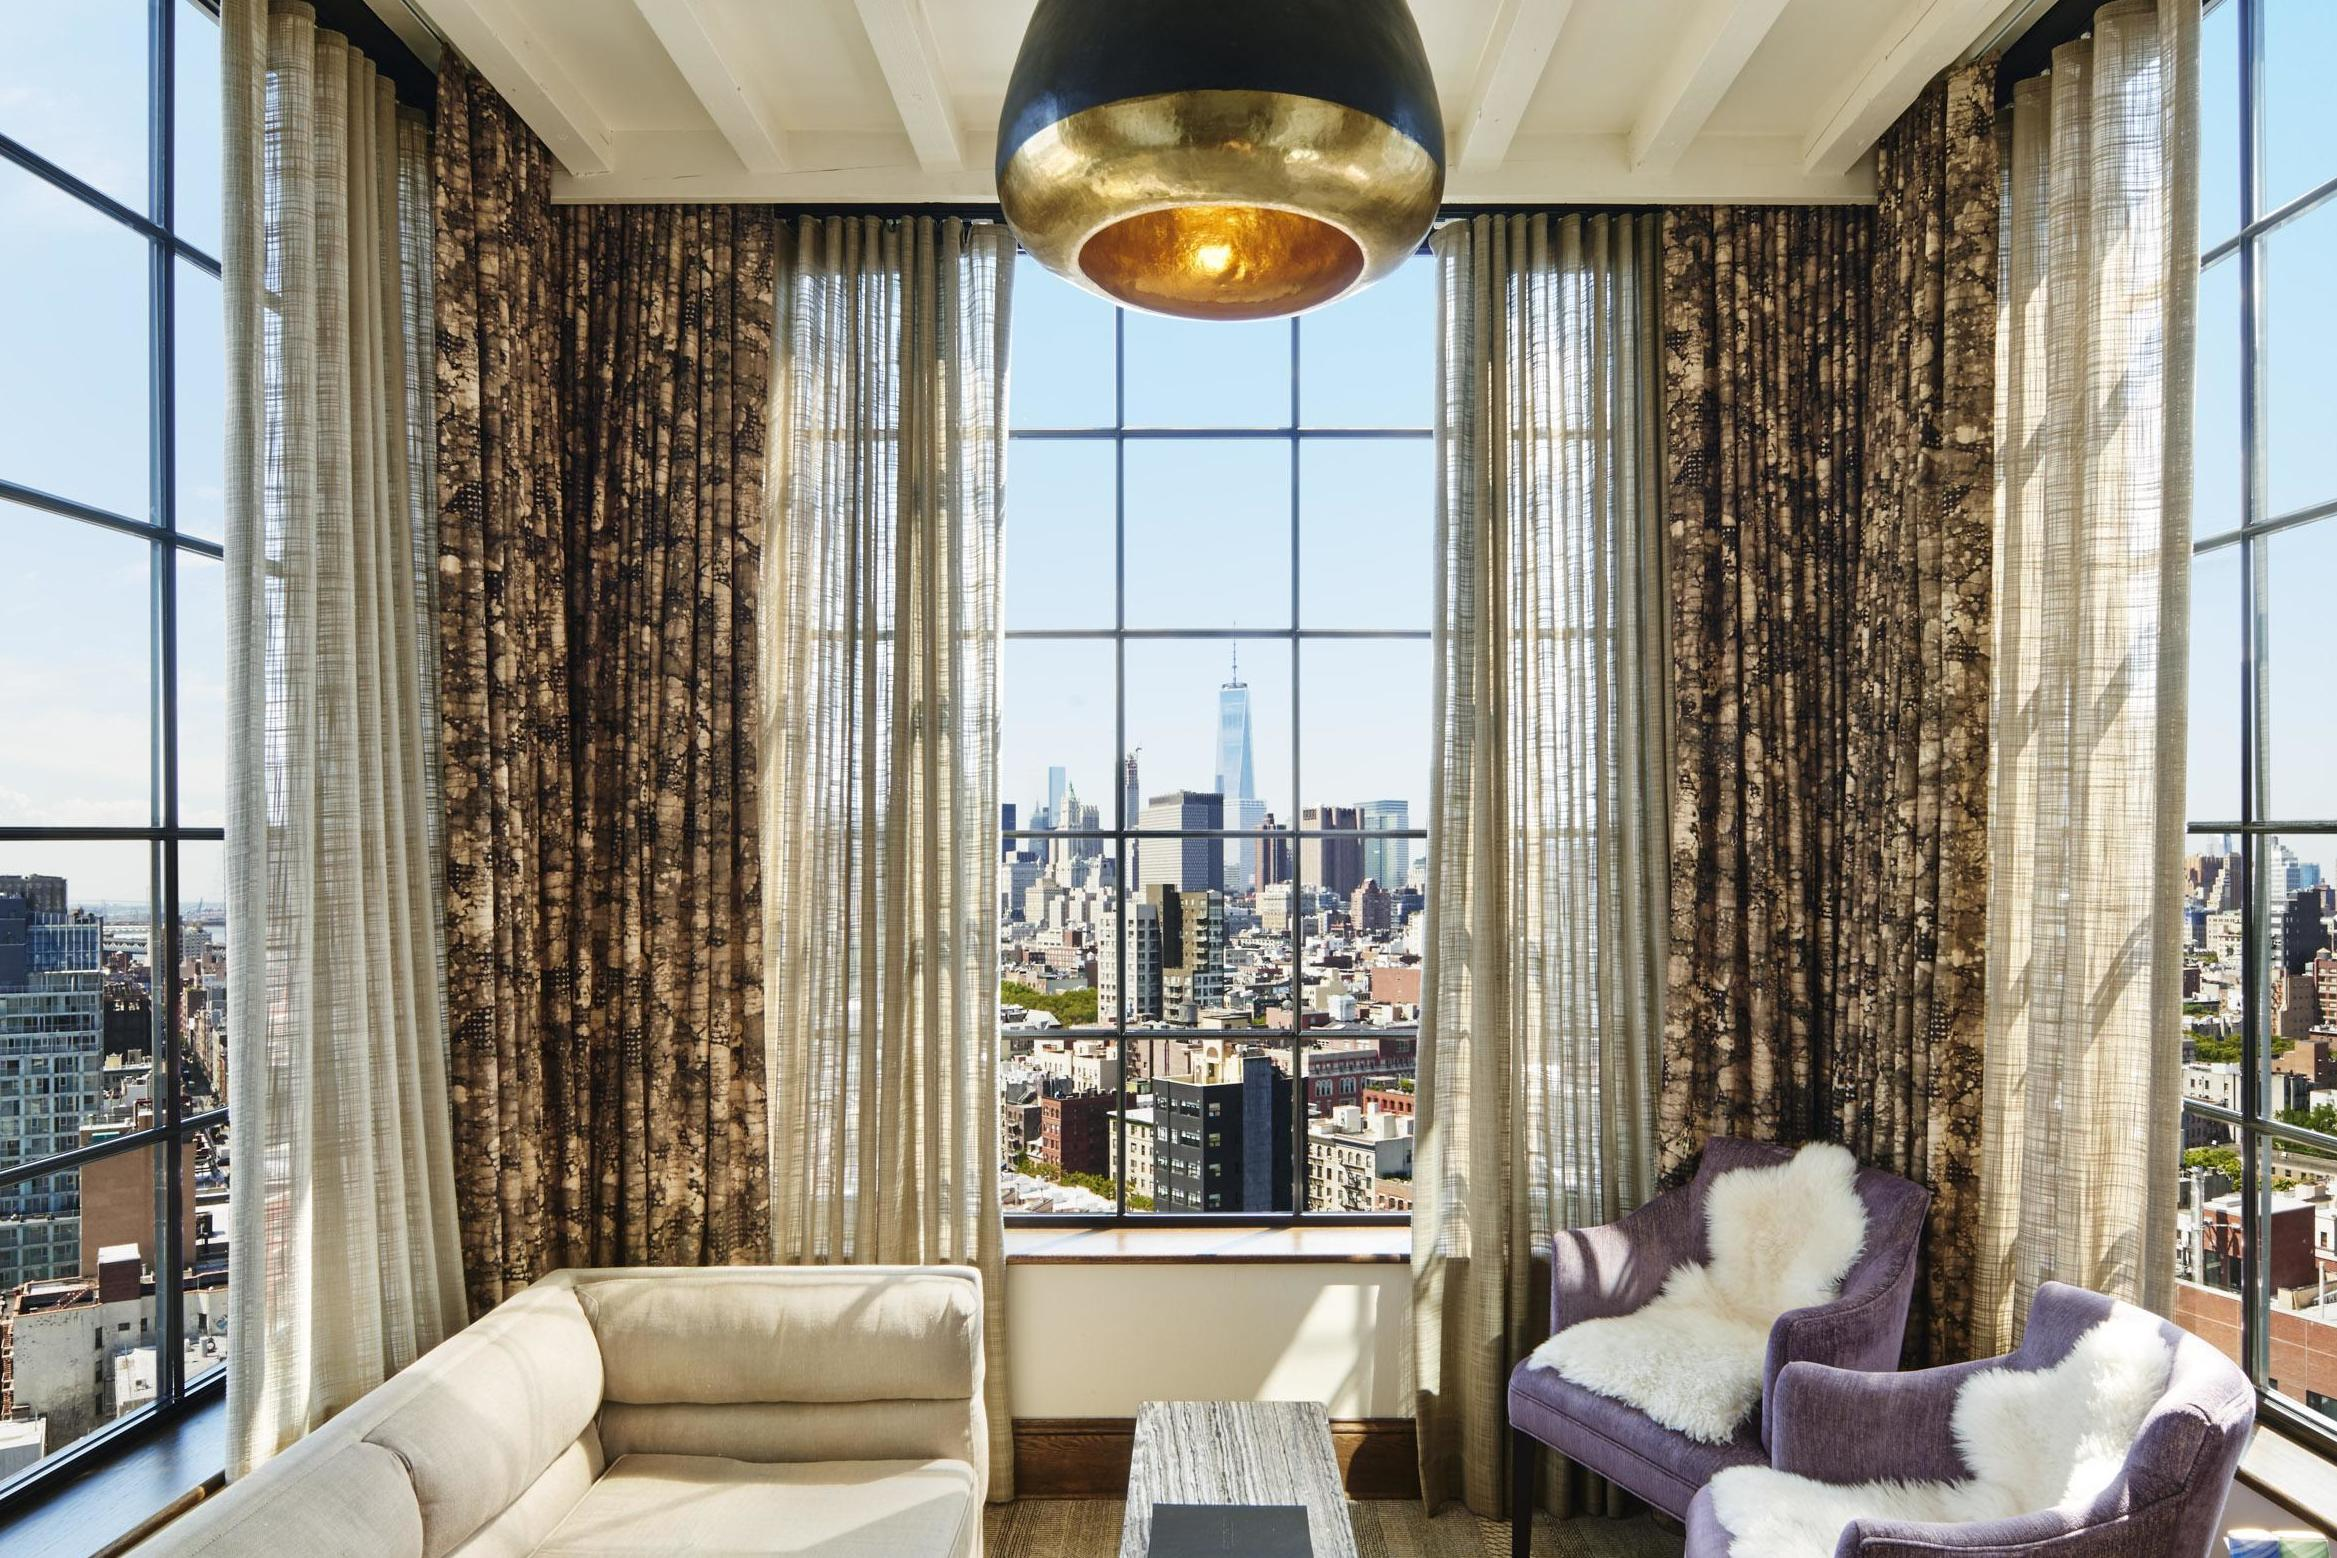 New York hotels: The best places to stay for location and style